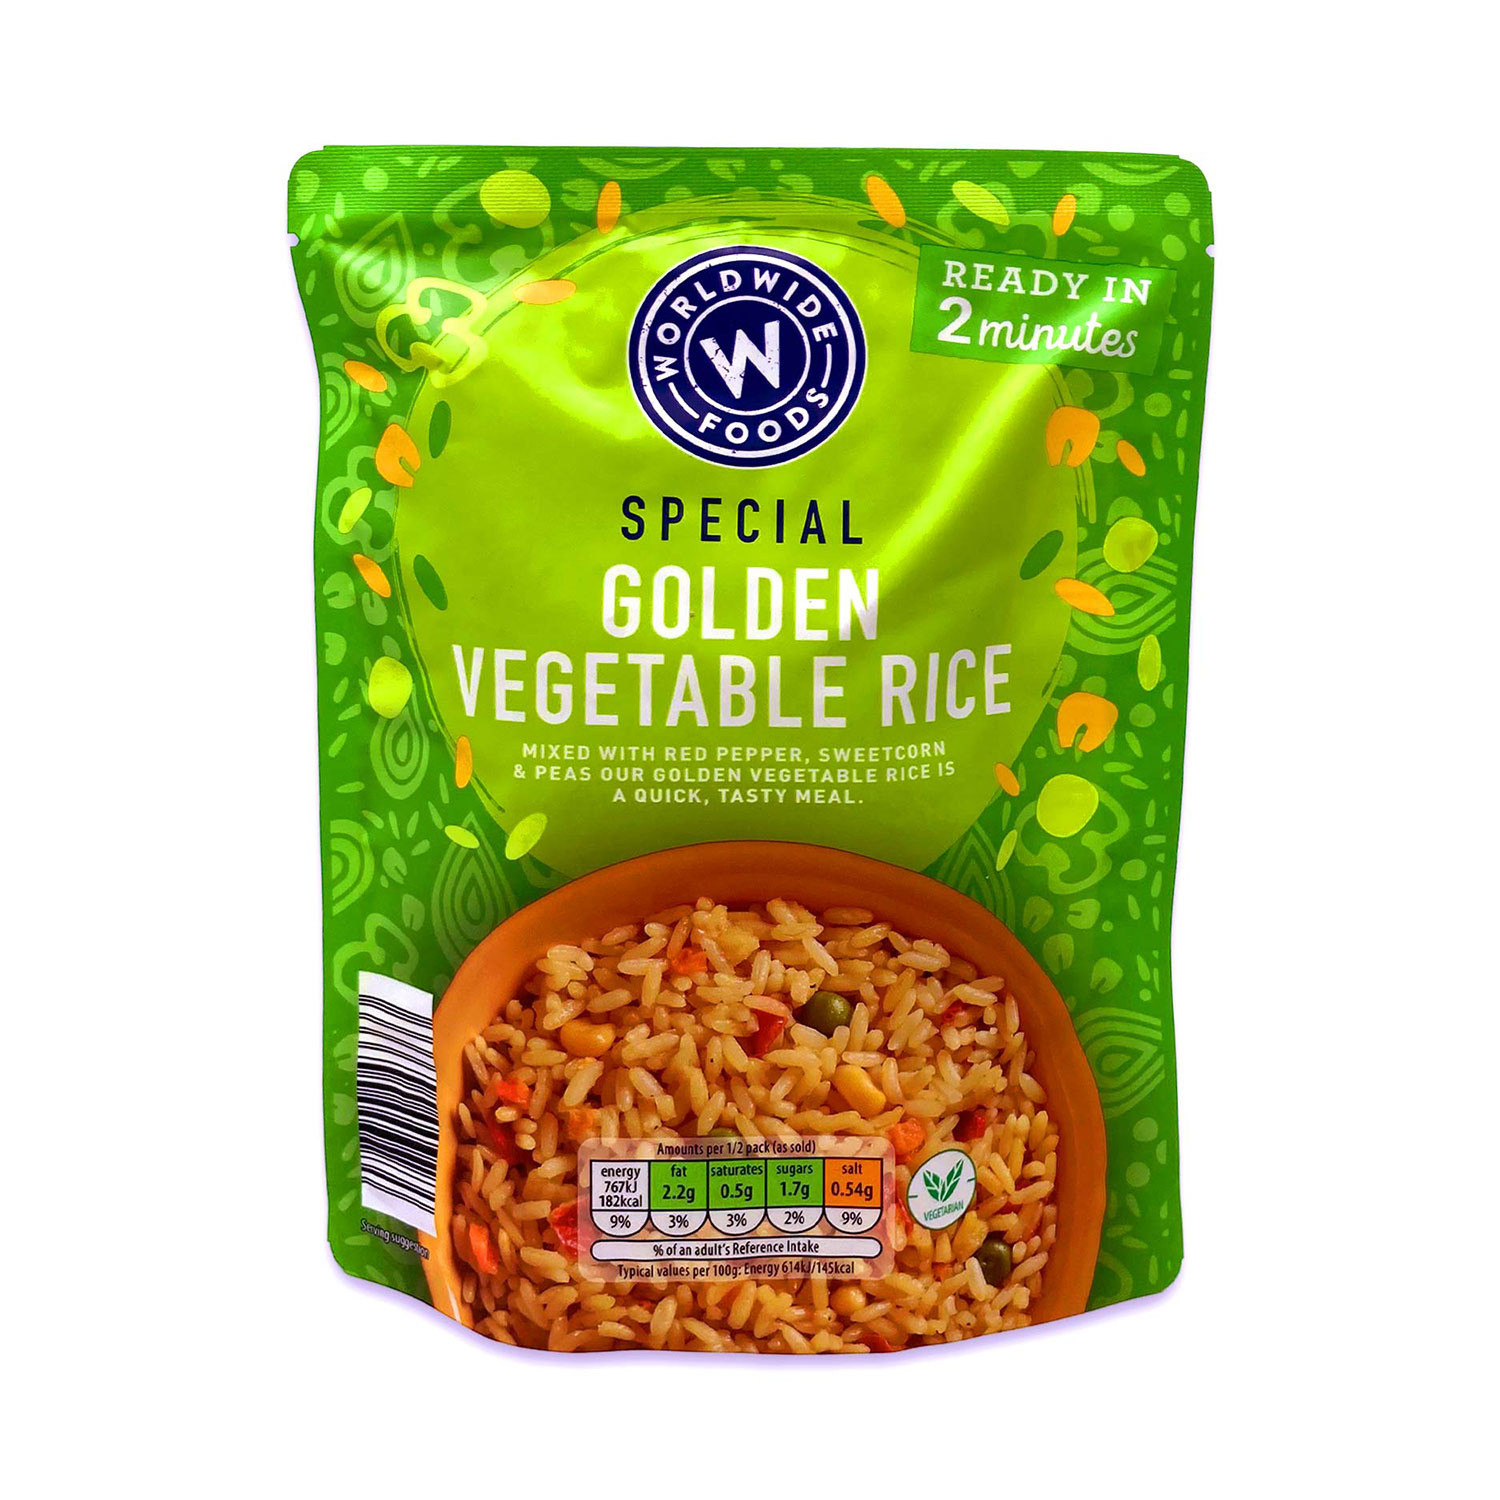 Special Golden Vegetable Rice